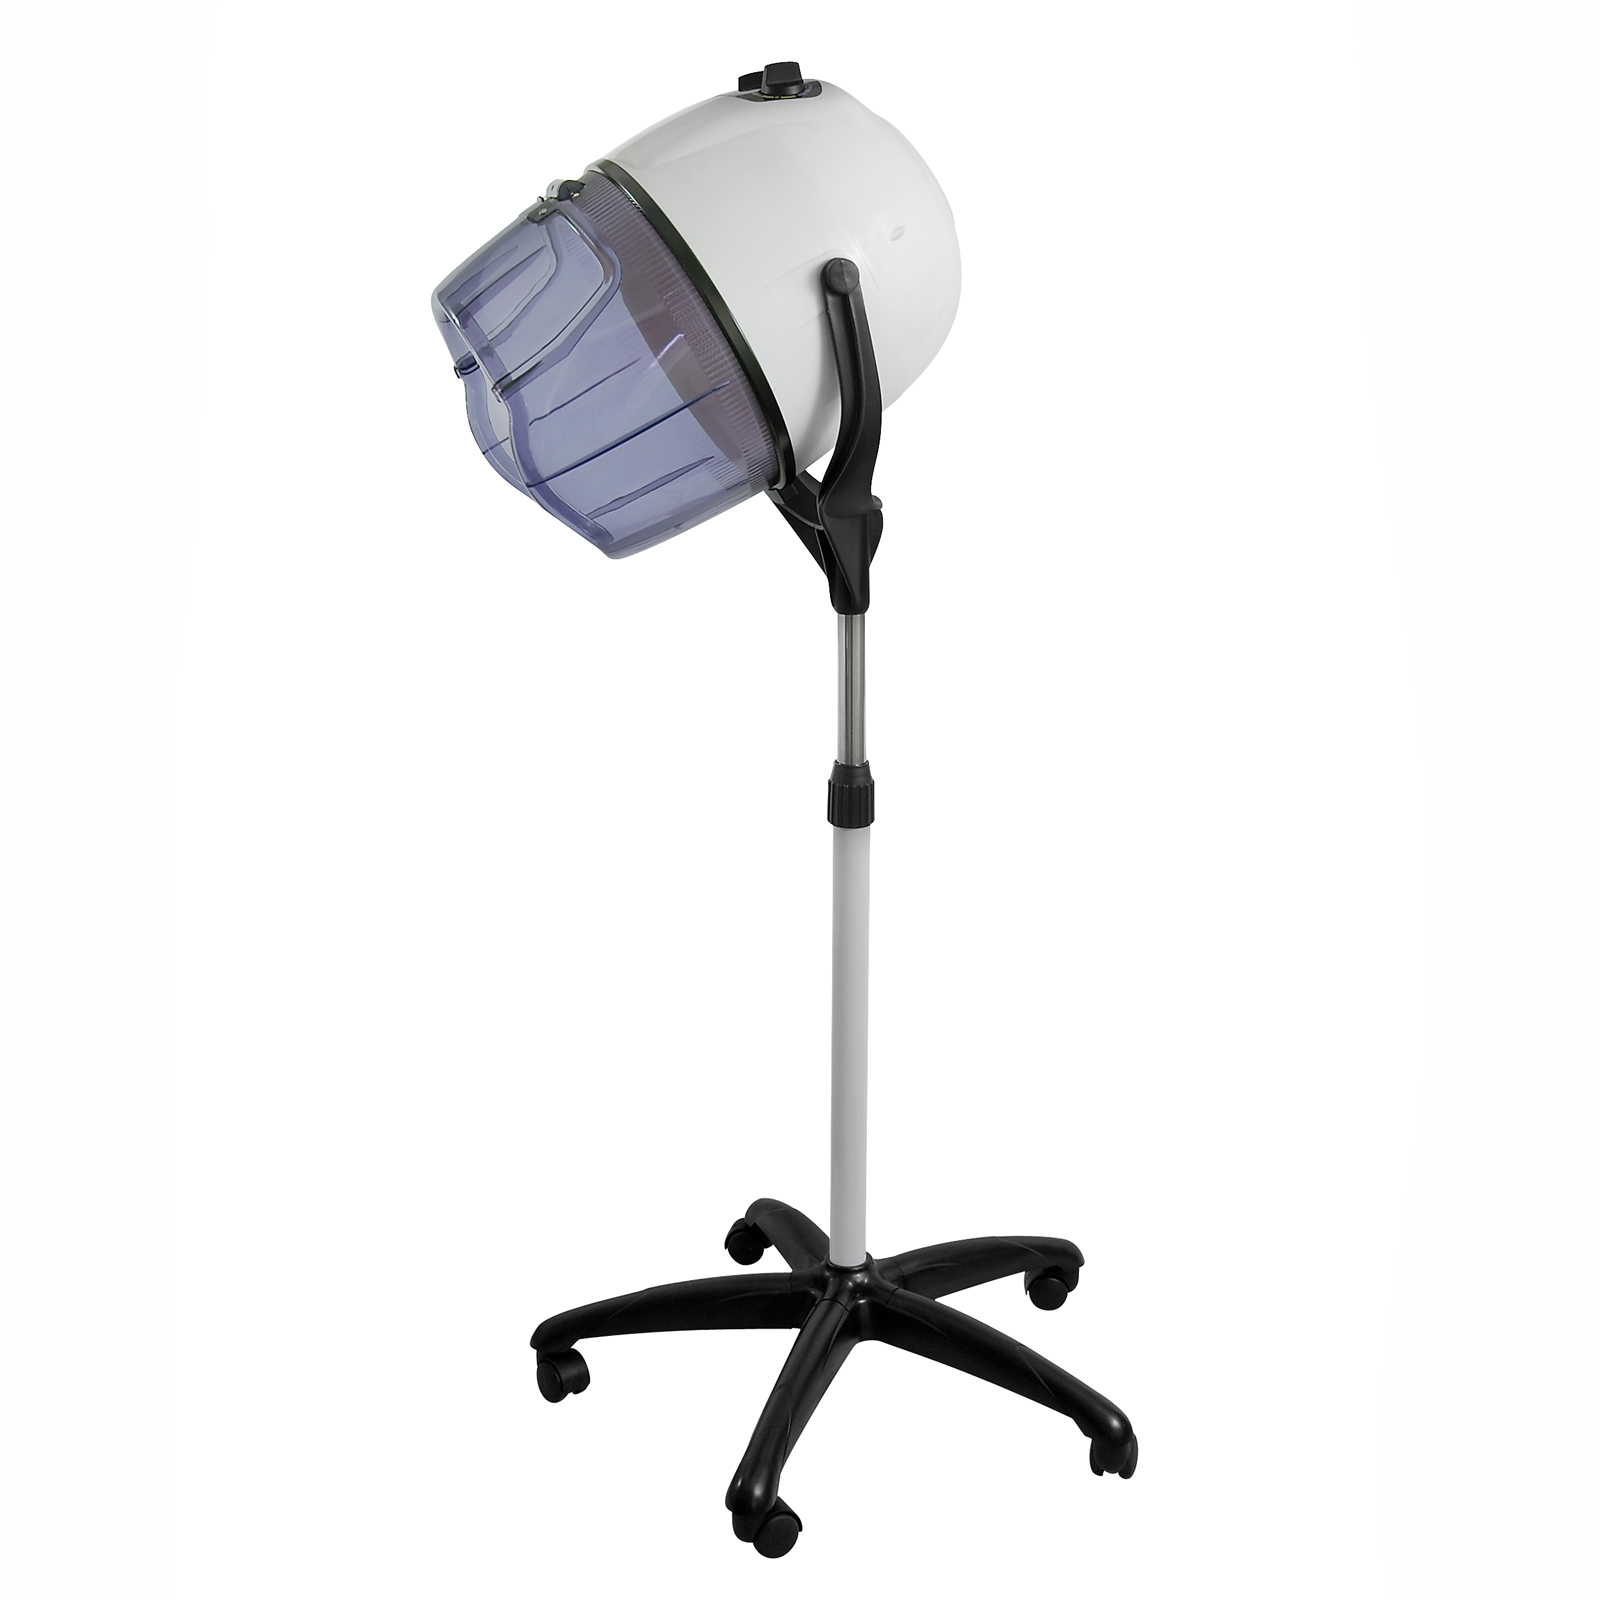 Salon chair hooded bonnet hair dryer standing rolling stand up floor hood ebay - Salon chair with hair dryer ...